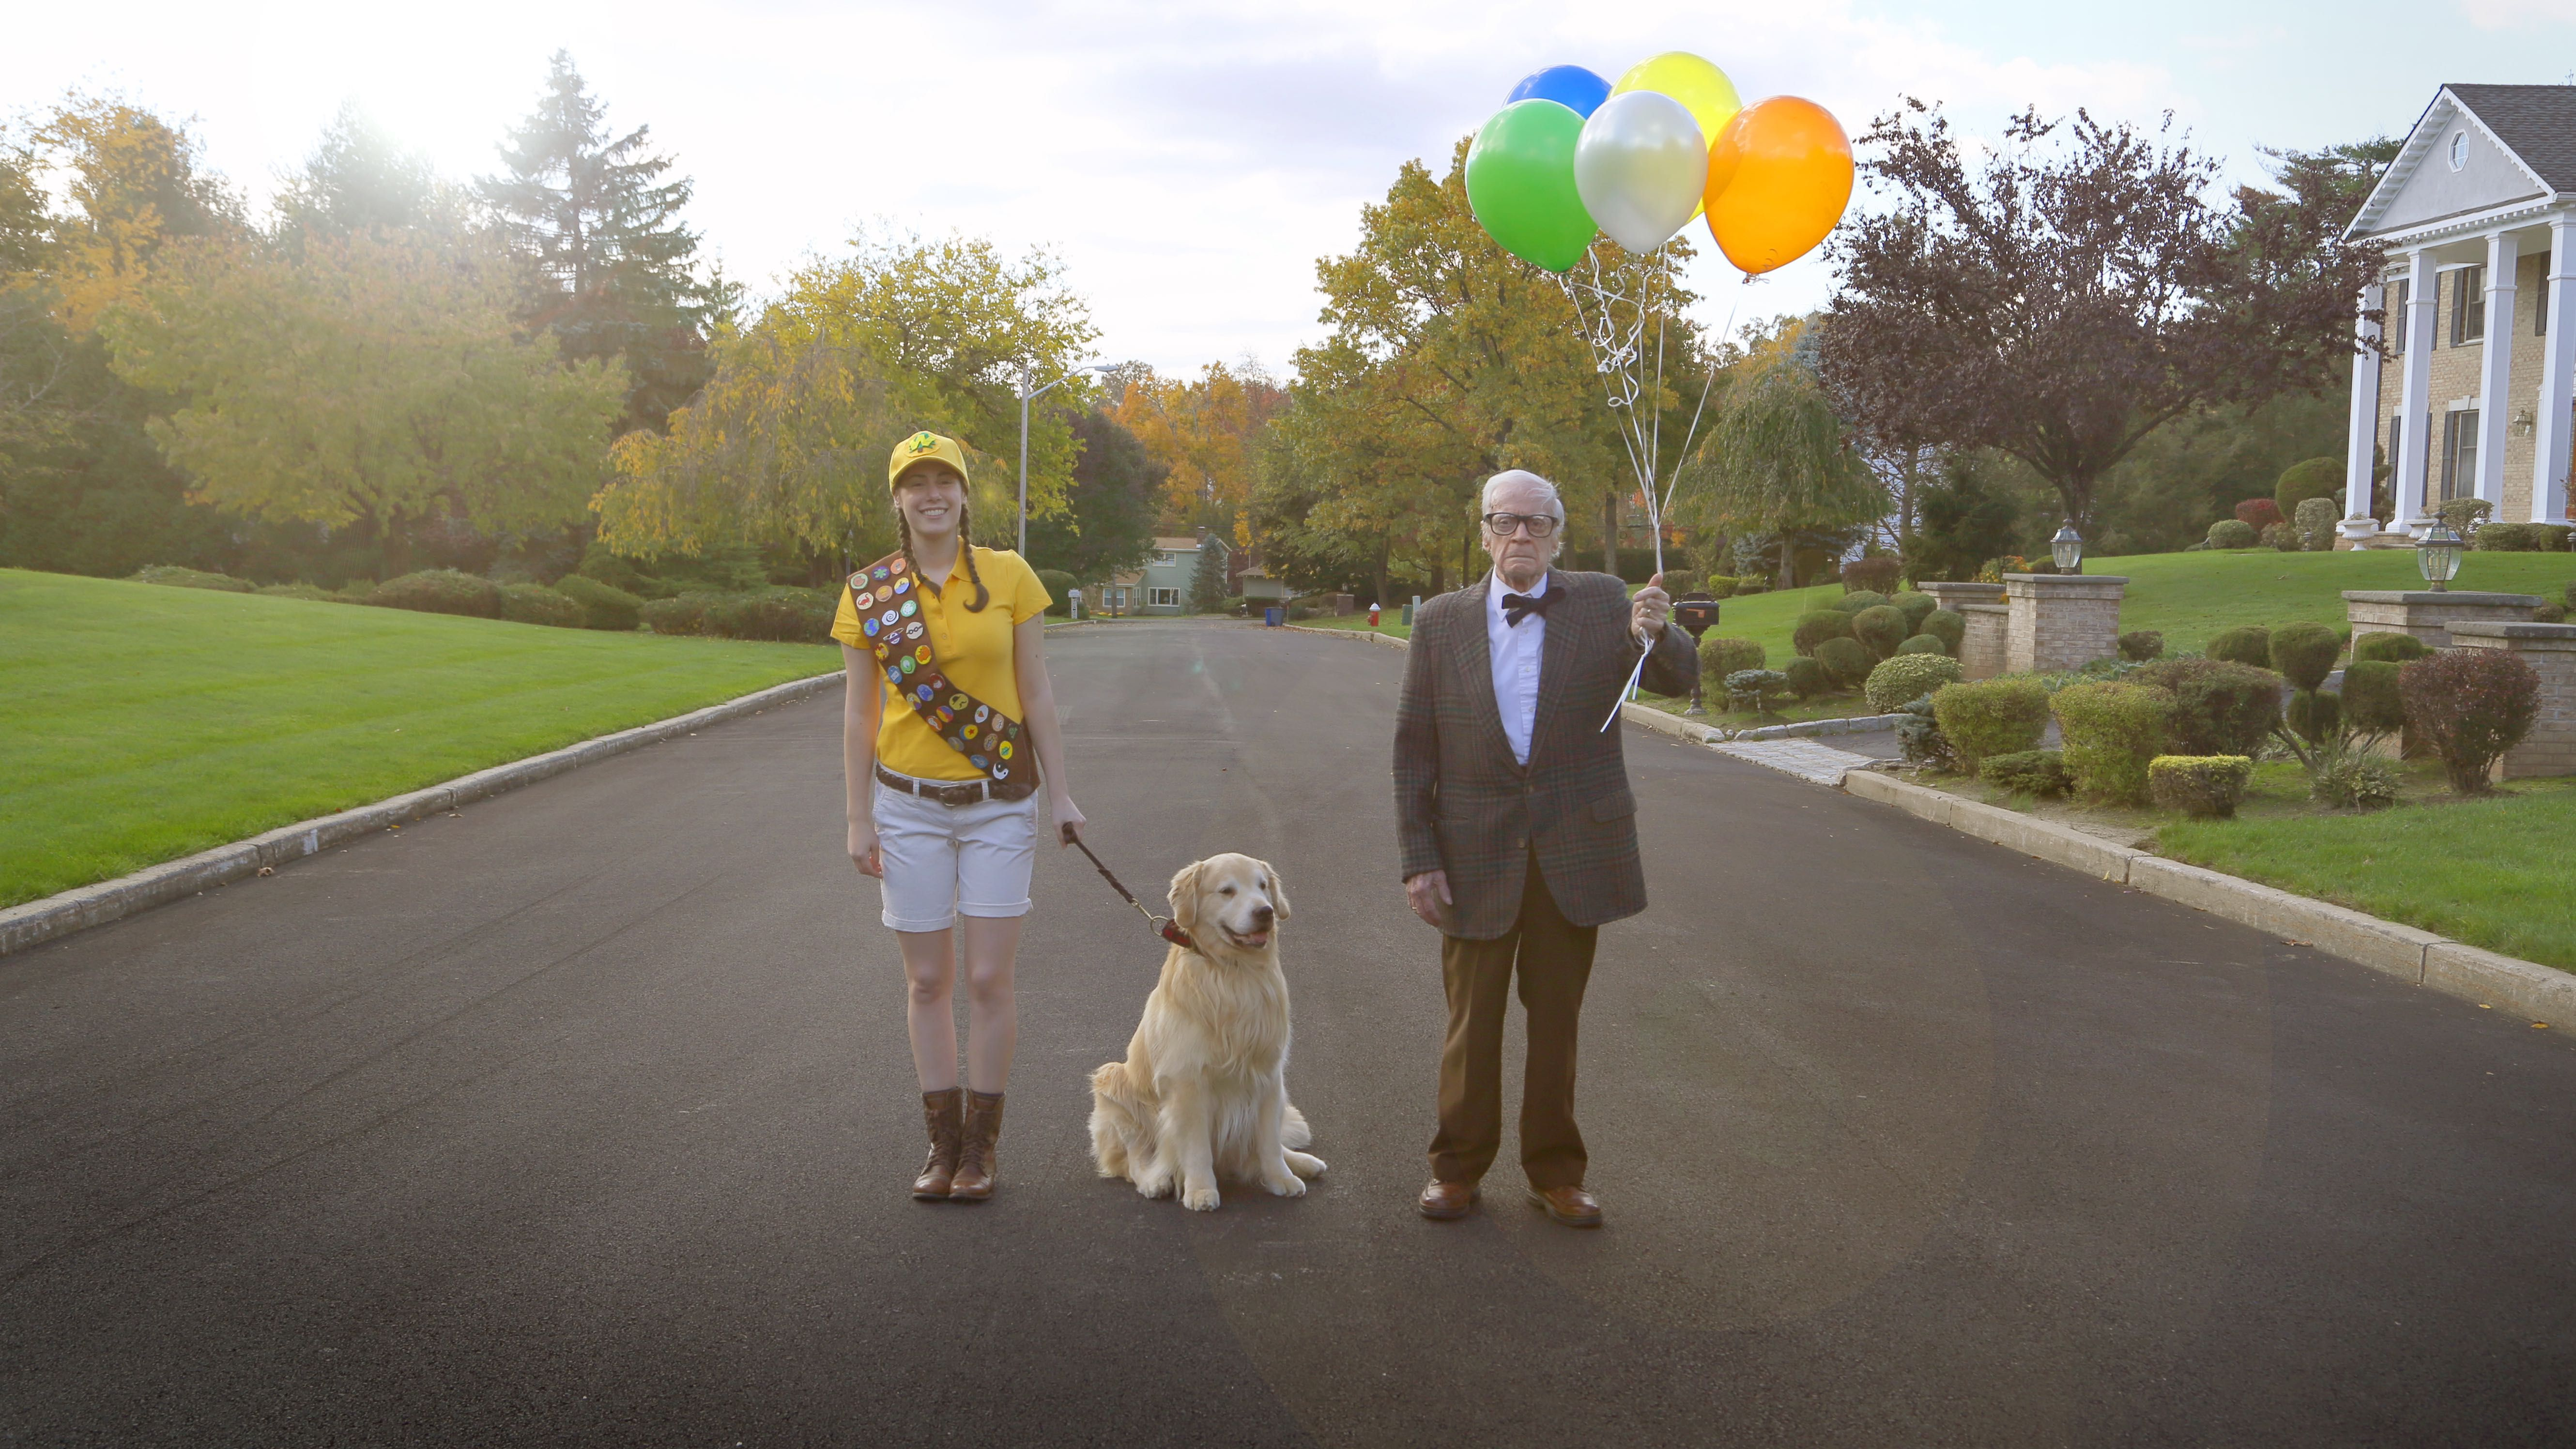 Fun Halloween Diy Costume From The Film Up Russell Carl And Doug